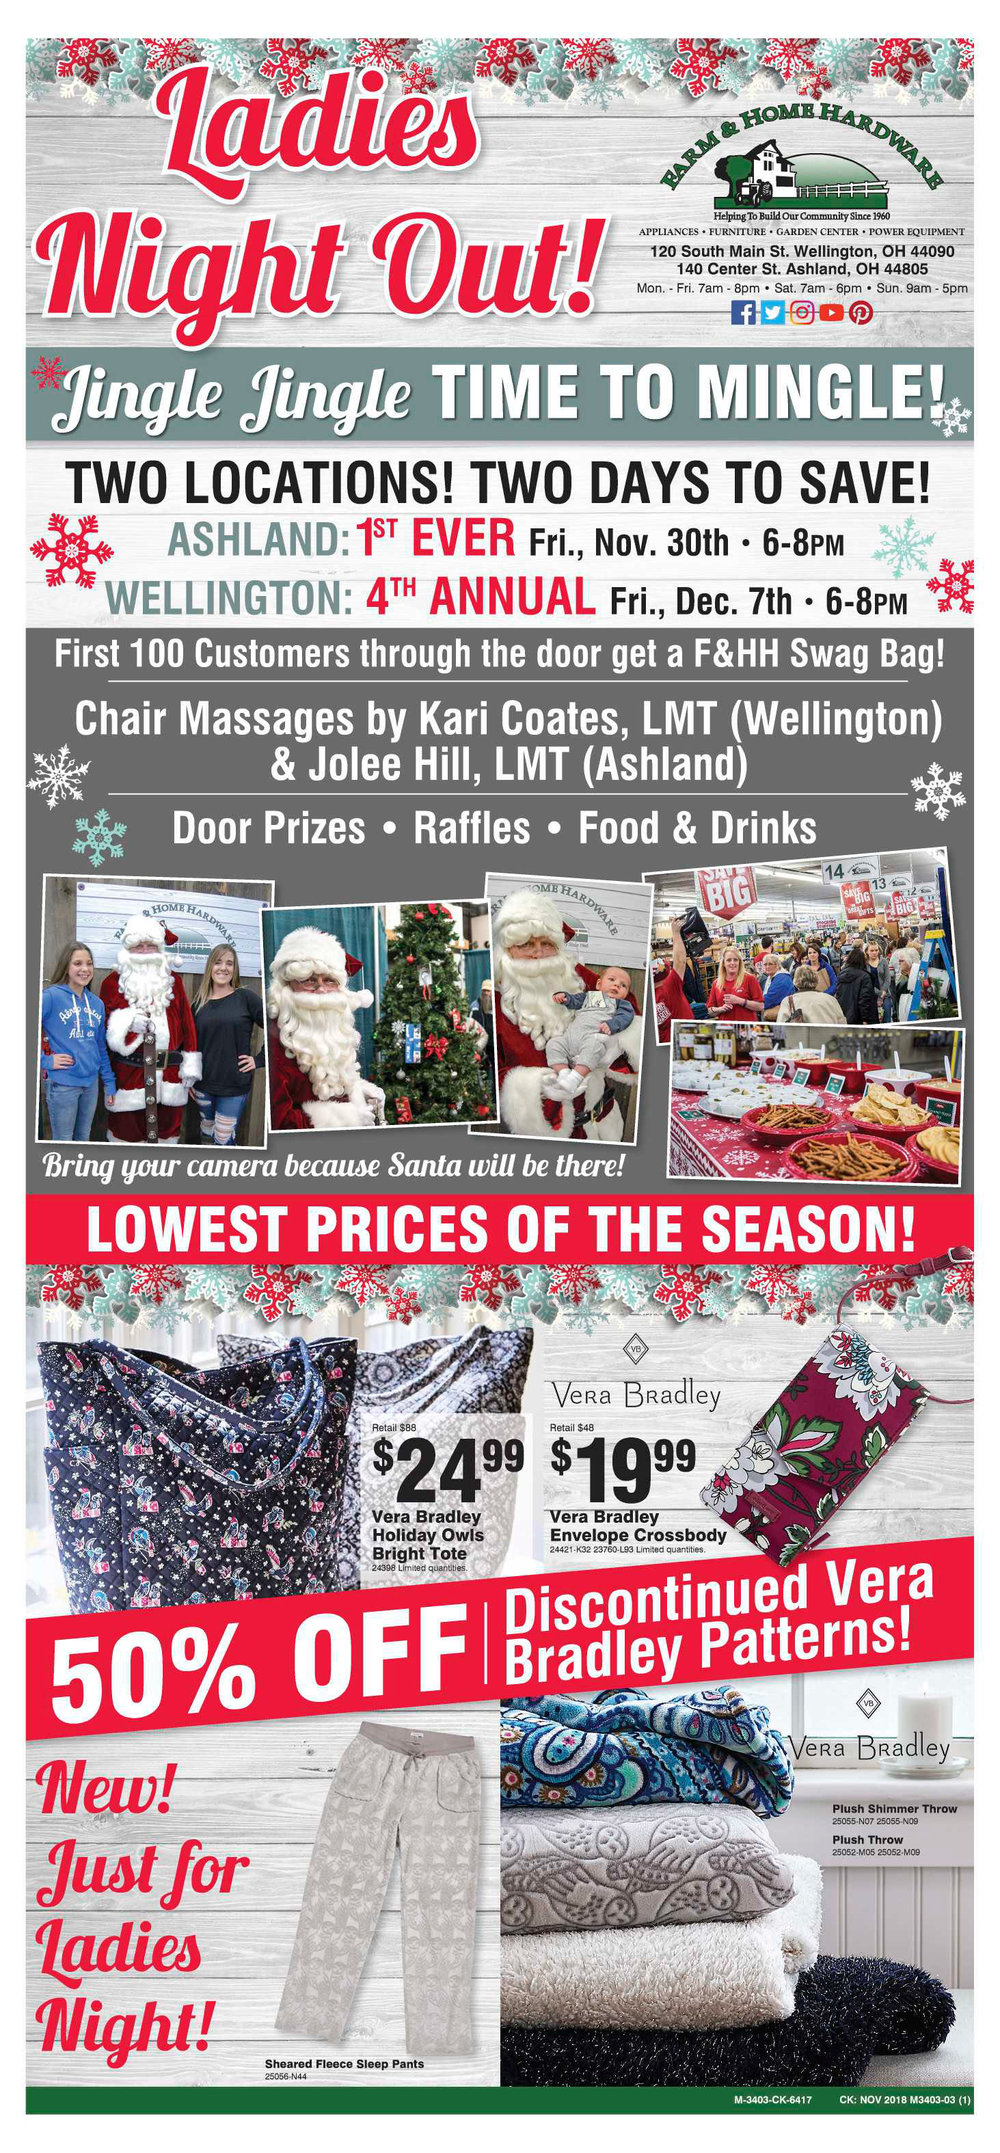 Farm & Home Hardware Ladies Night Out 2018 Pg. 1